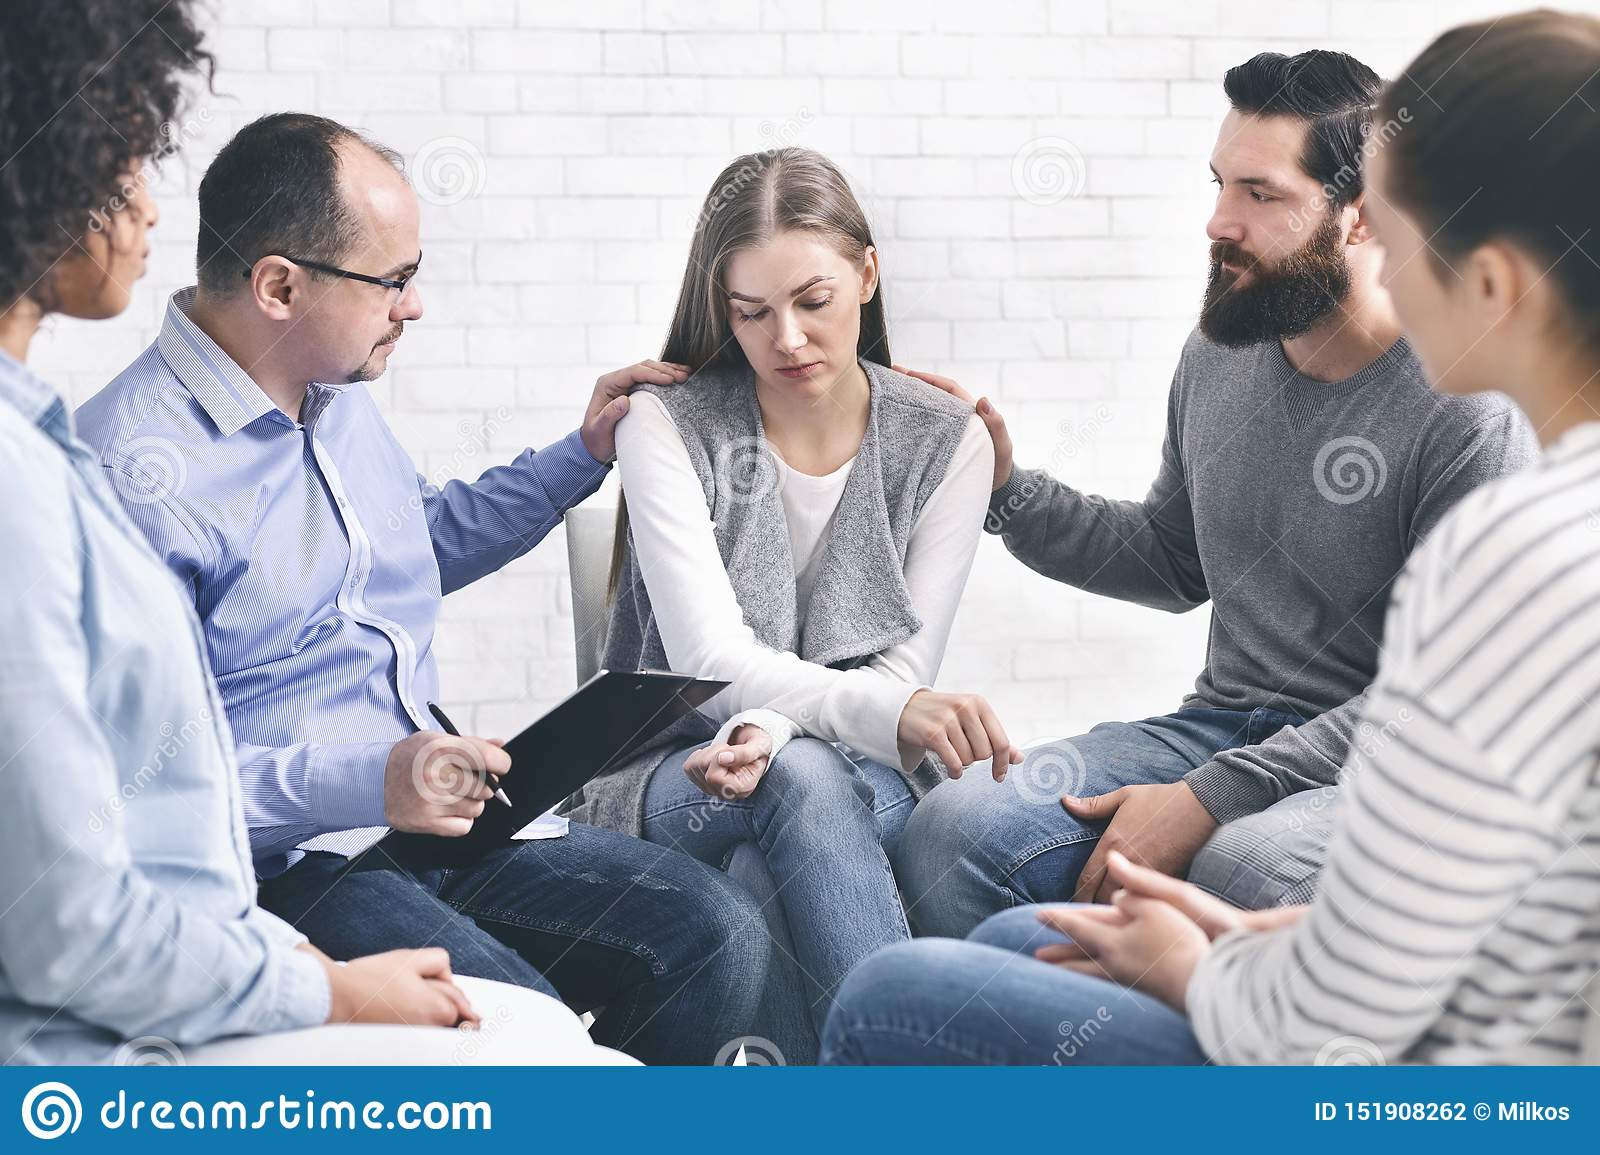 Domestic Violence Victim On Therapy With Support Group